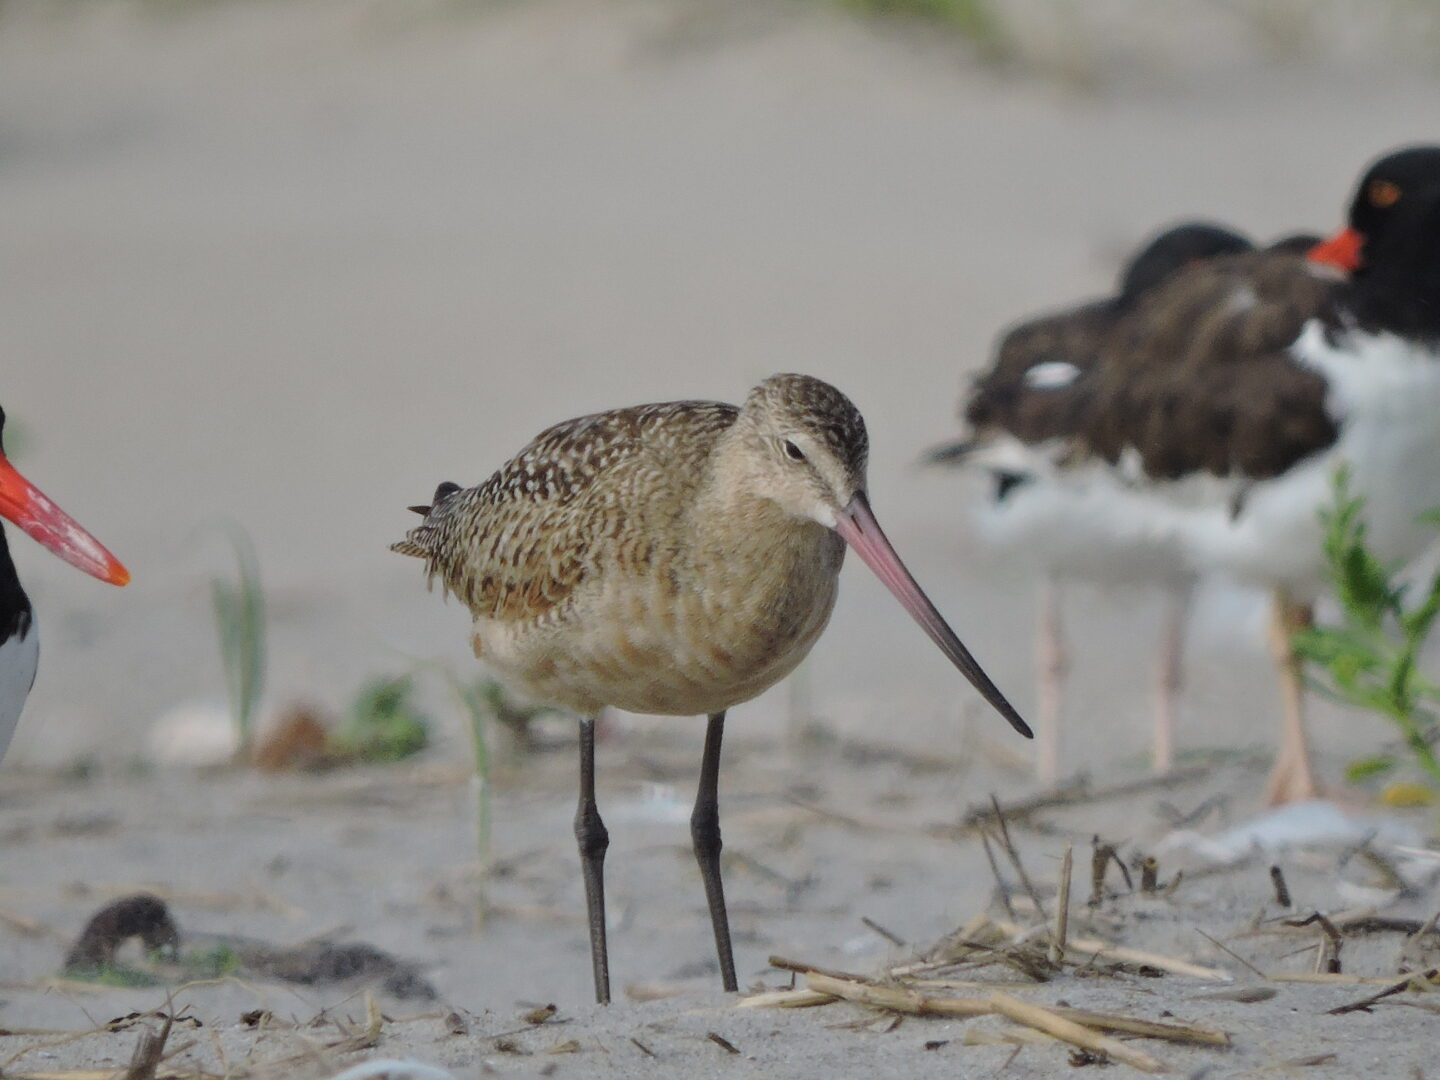 Thankfully, unlike Jerry Seinfeld I didn't have to do anything to unethical to secure a marbled rye..I mean marbled godwit!